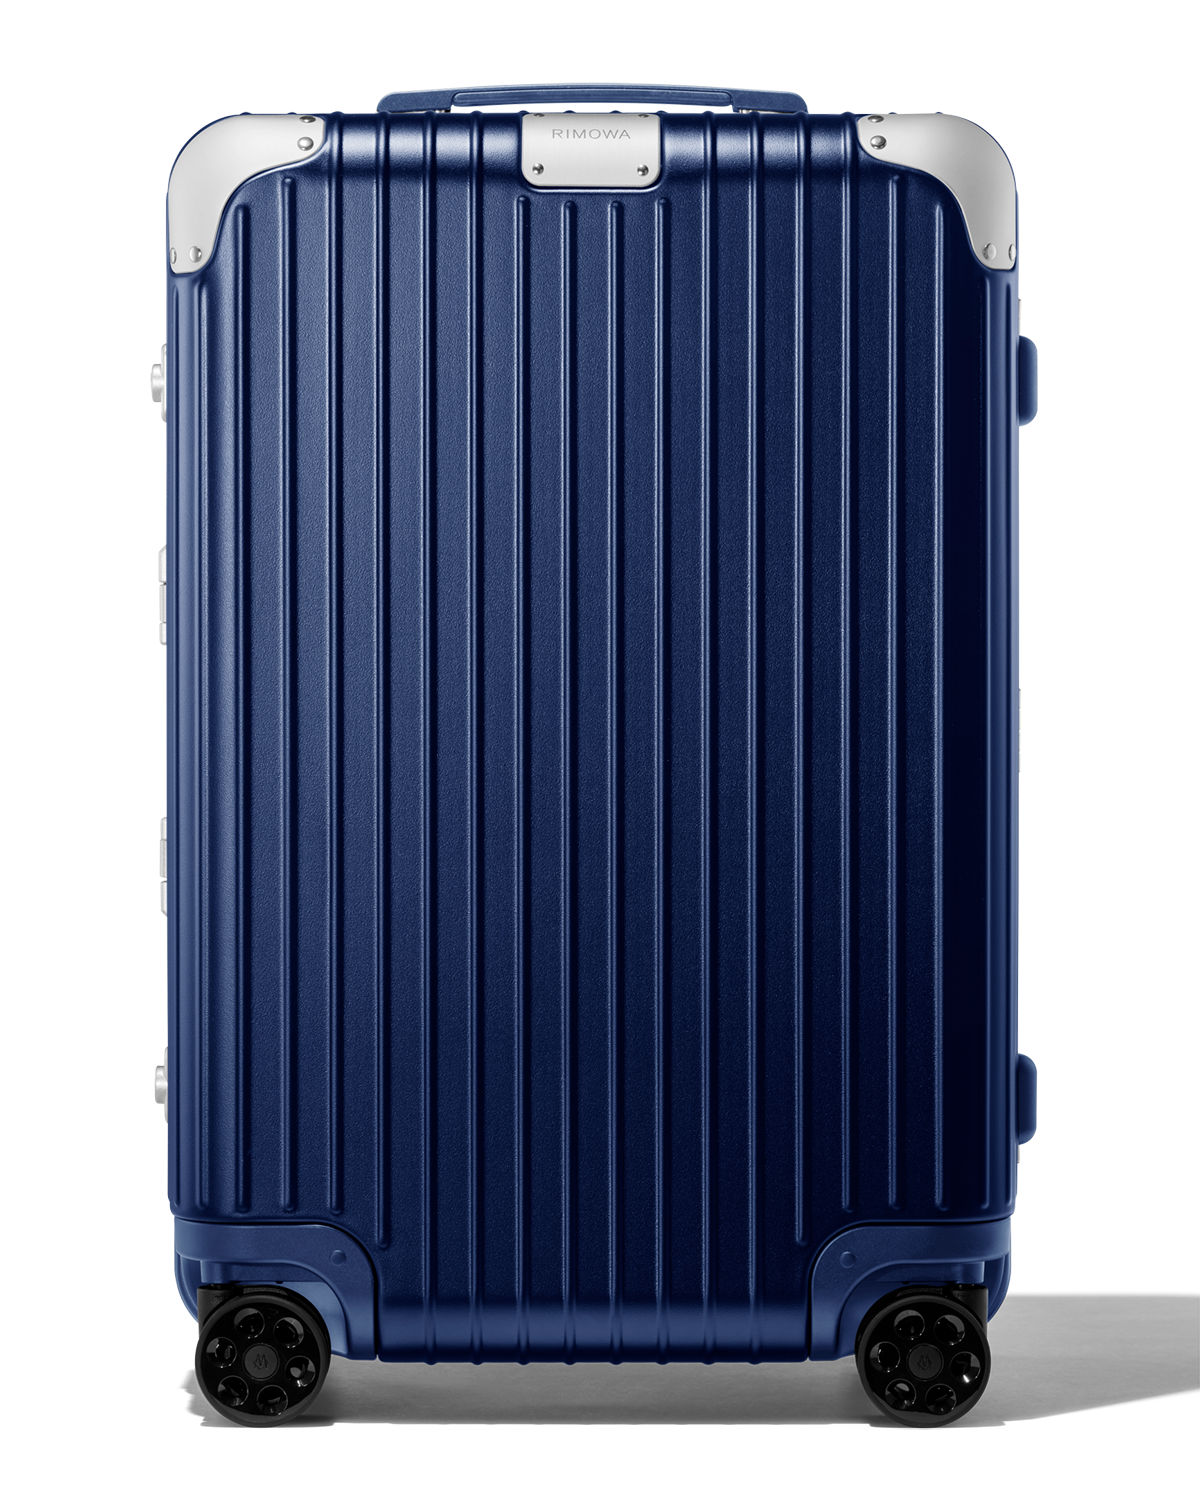 Rimowa Bags HYBRID CHECK-IN M SPINNER LUGGAGE